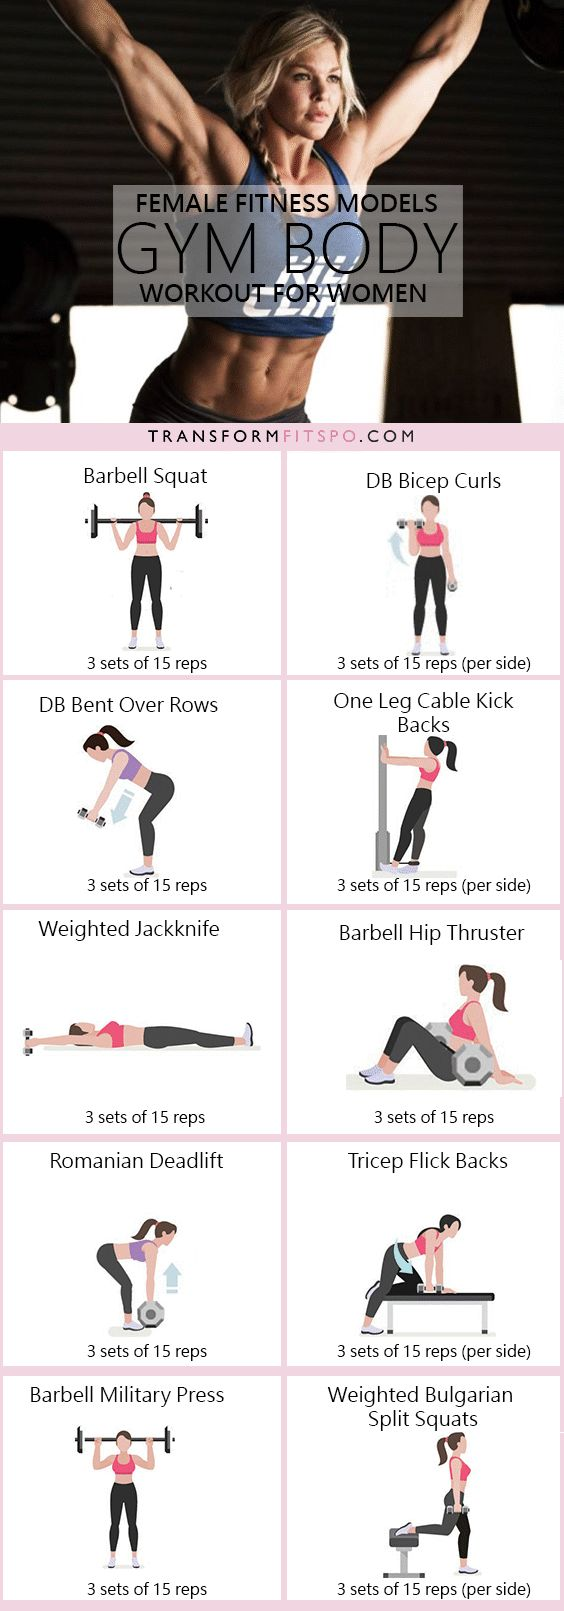 Repin and share if you enjoyed this intense, gym body workout! If you want those curves, you need to up the resistance! Read the article for all of the information!